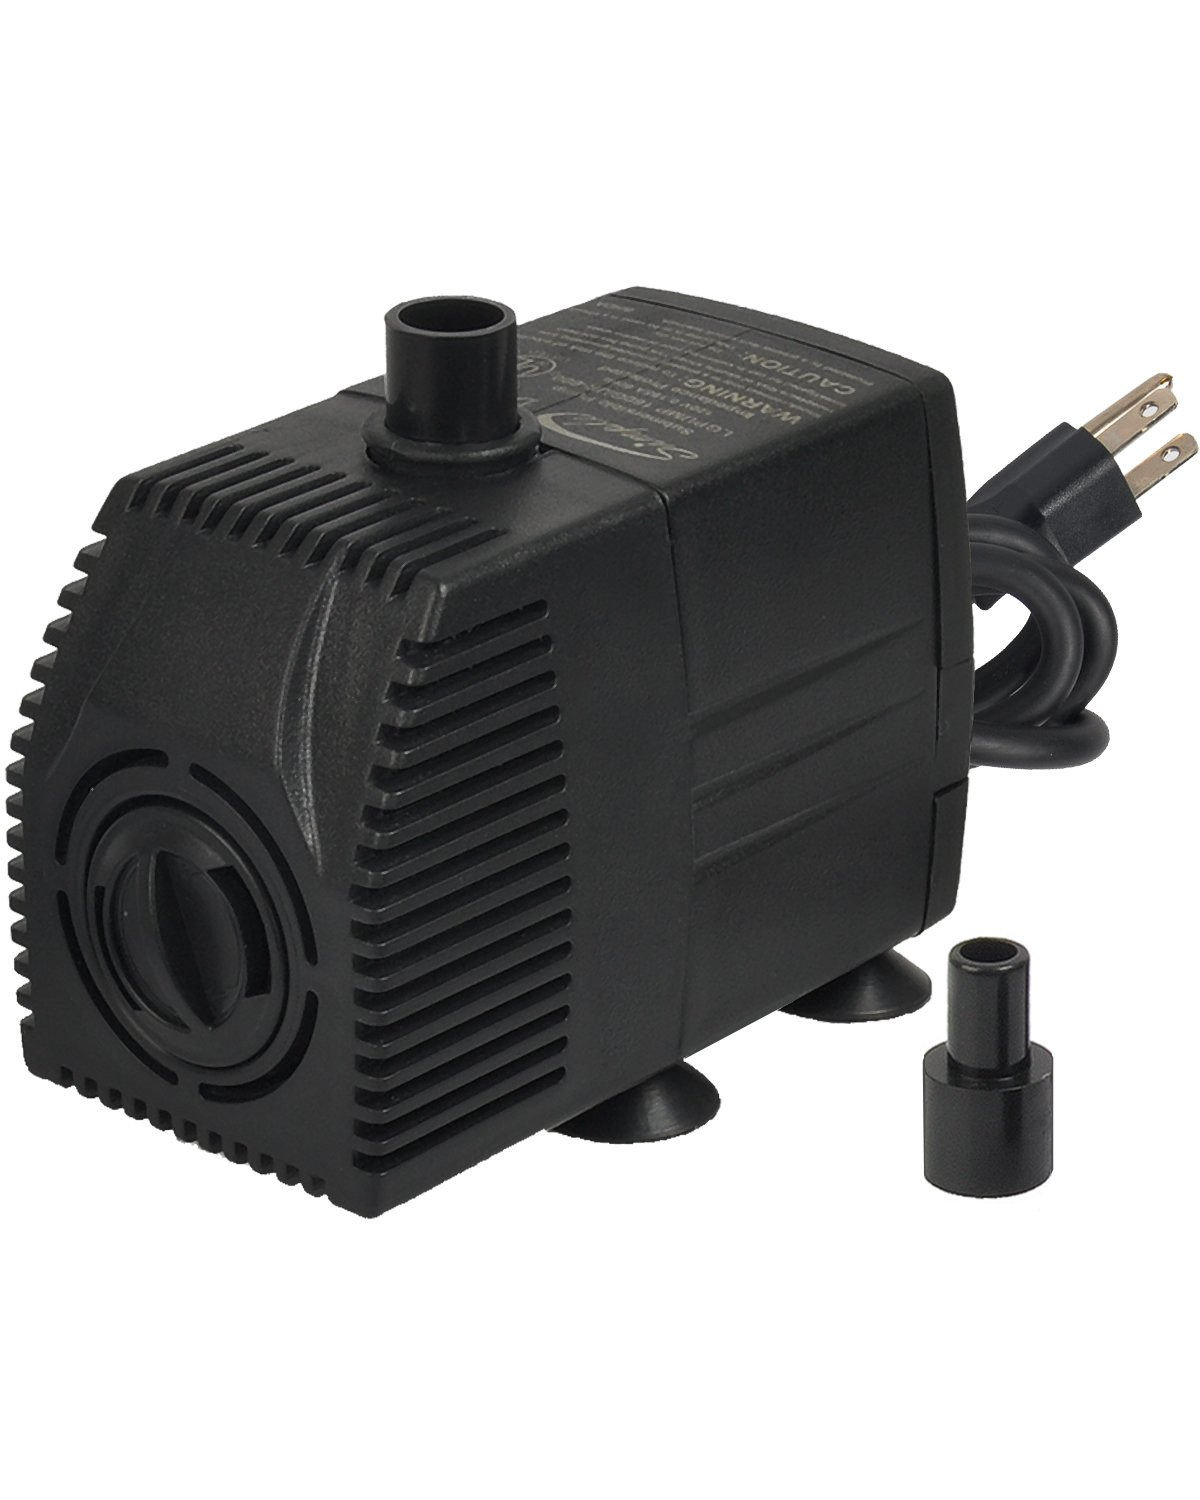 Simple Deluxe 160 GPH UL Listed Submersible Pump with 6' Cord, Water Pump for Fish Tank, Hydroponics, Aquaponics, Fountains, Ponds, Statuary, Aquariums & Inline by Simple Deluxe